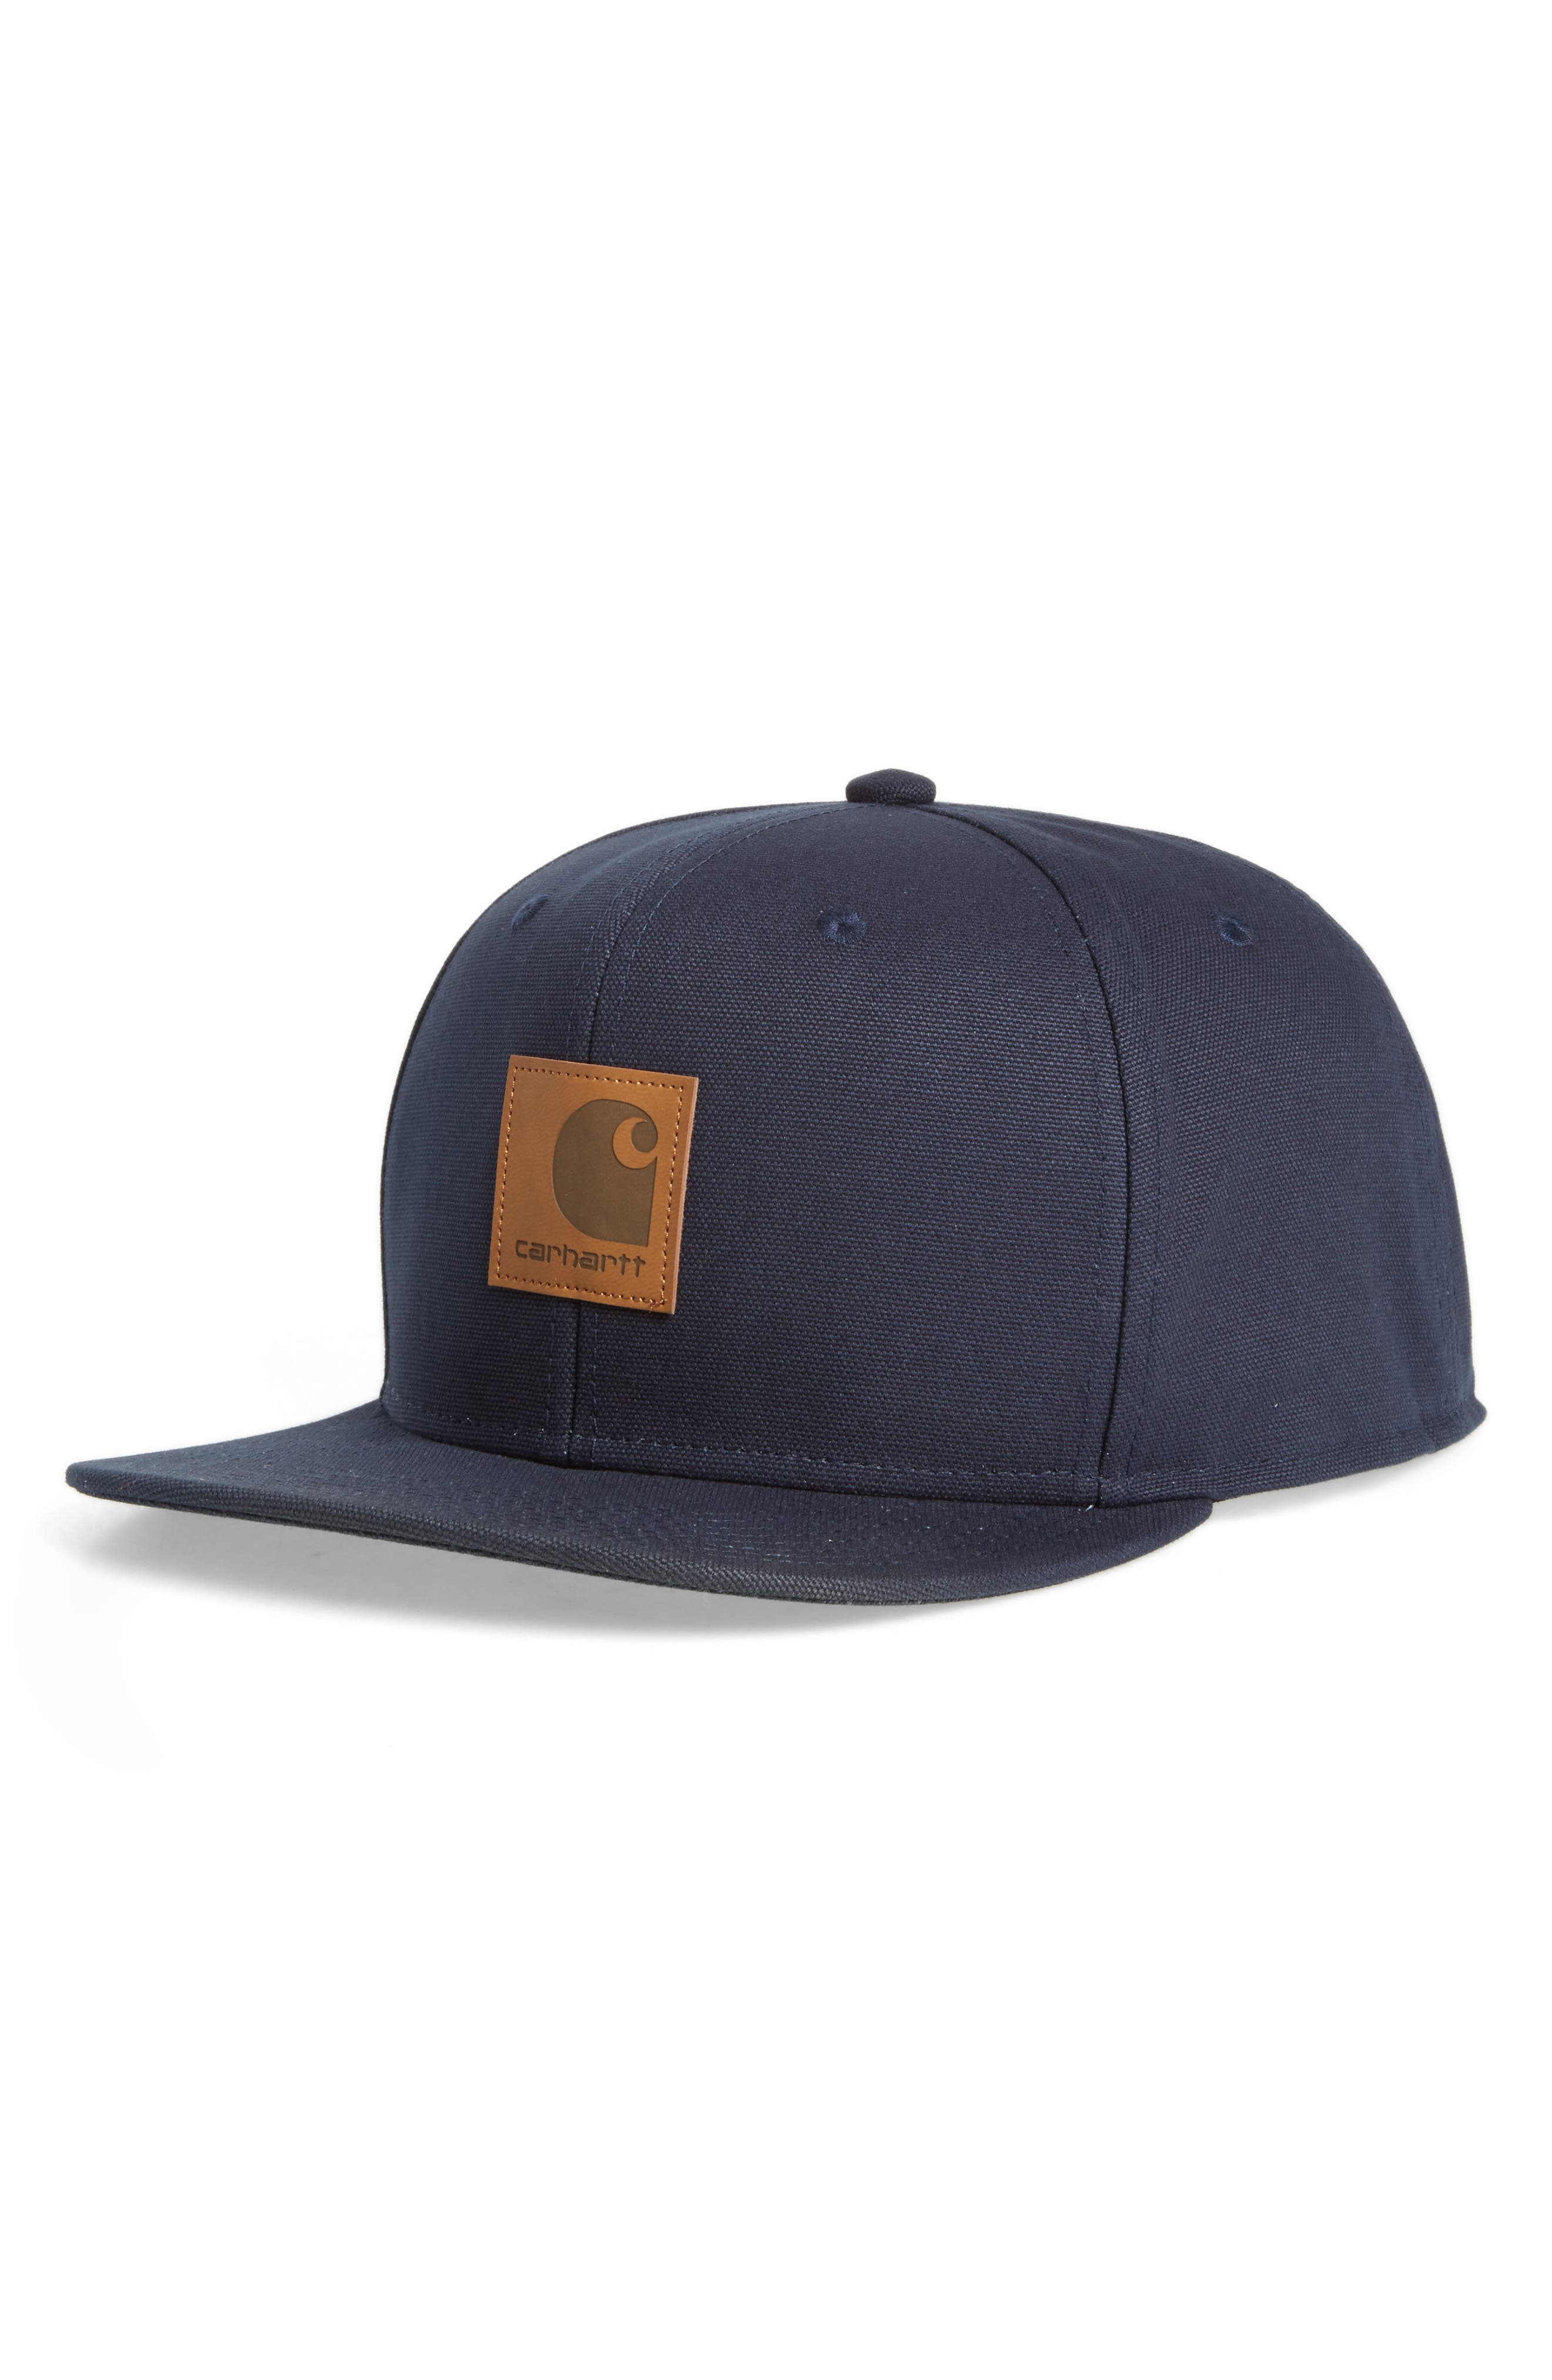 Alternate Image 1 Selected - Carhartt Work in Progress Snapback Cap